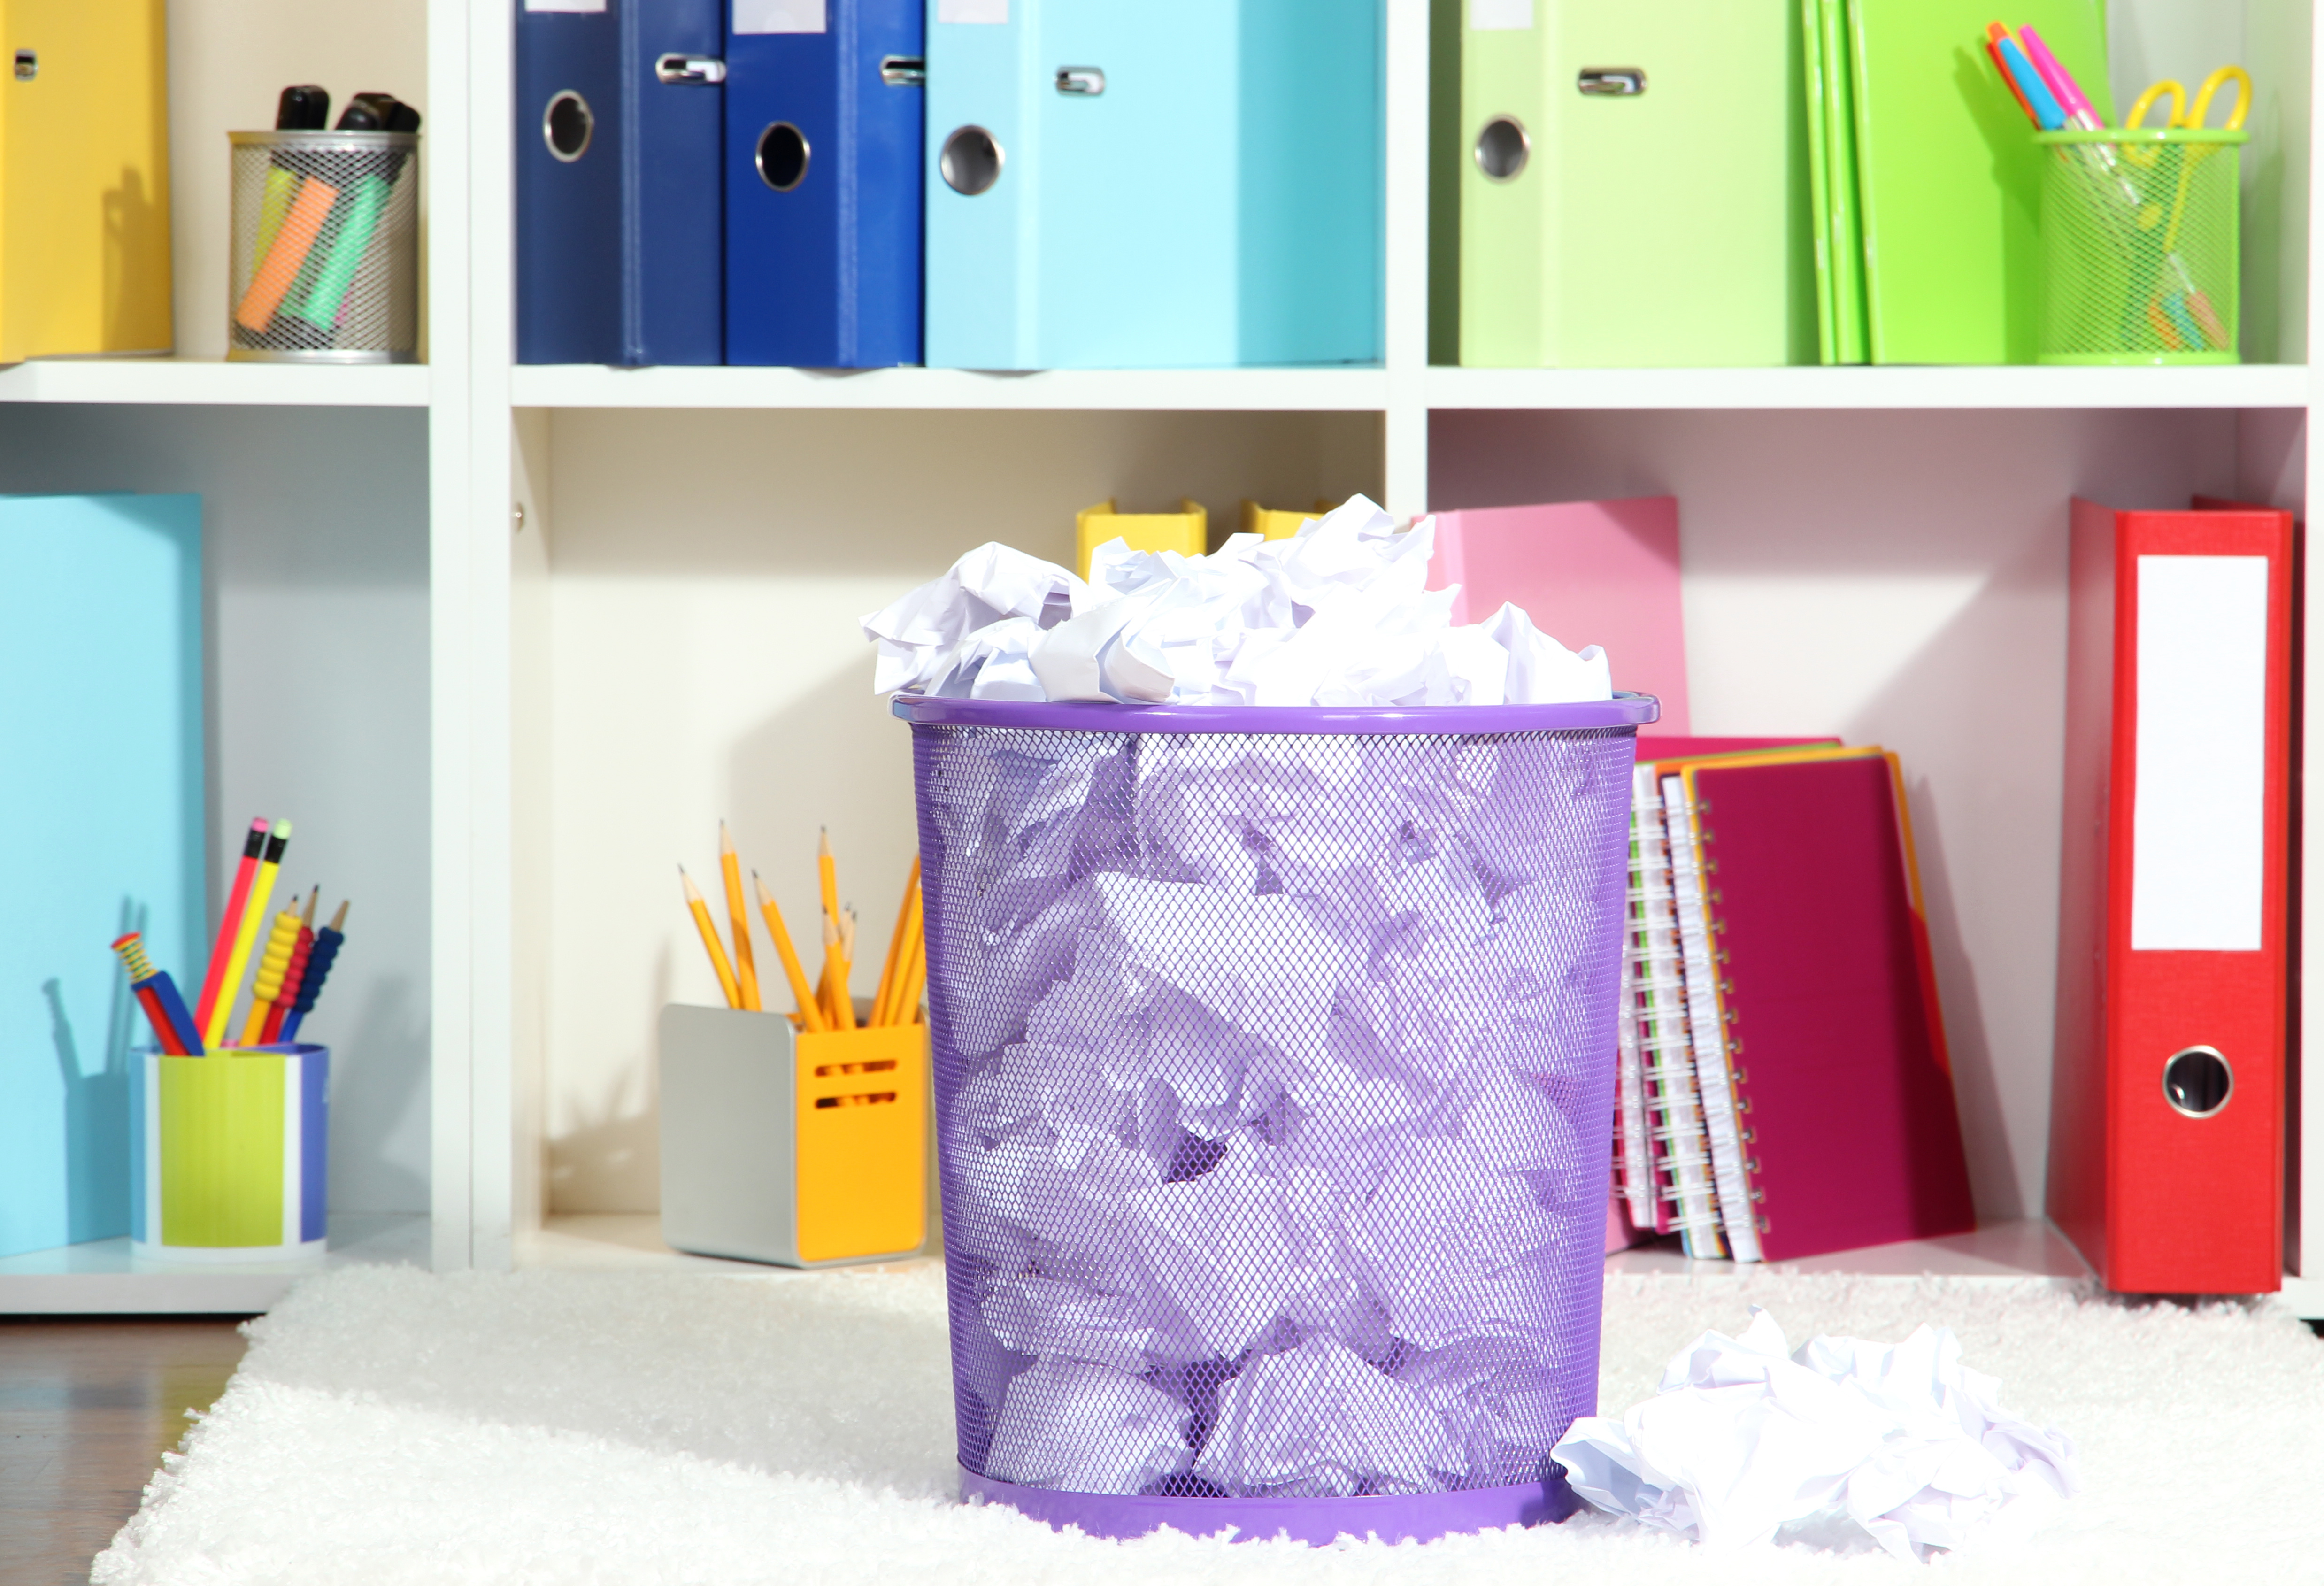 Cleaning up home office - decluttering workspace